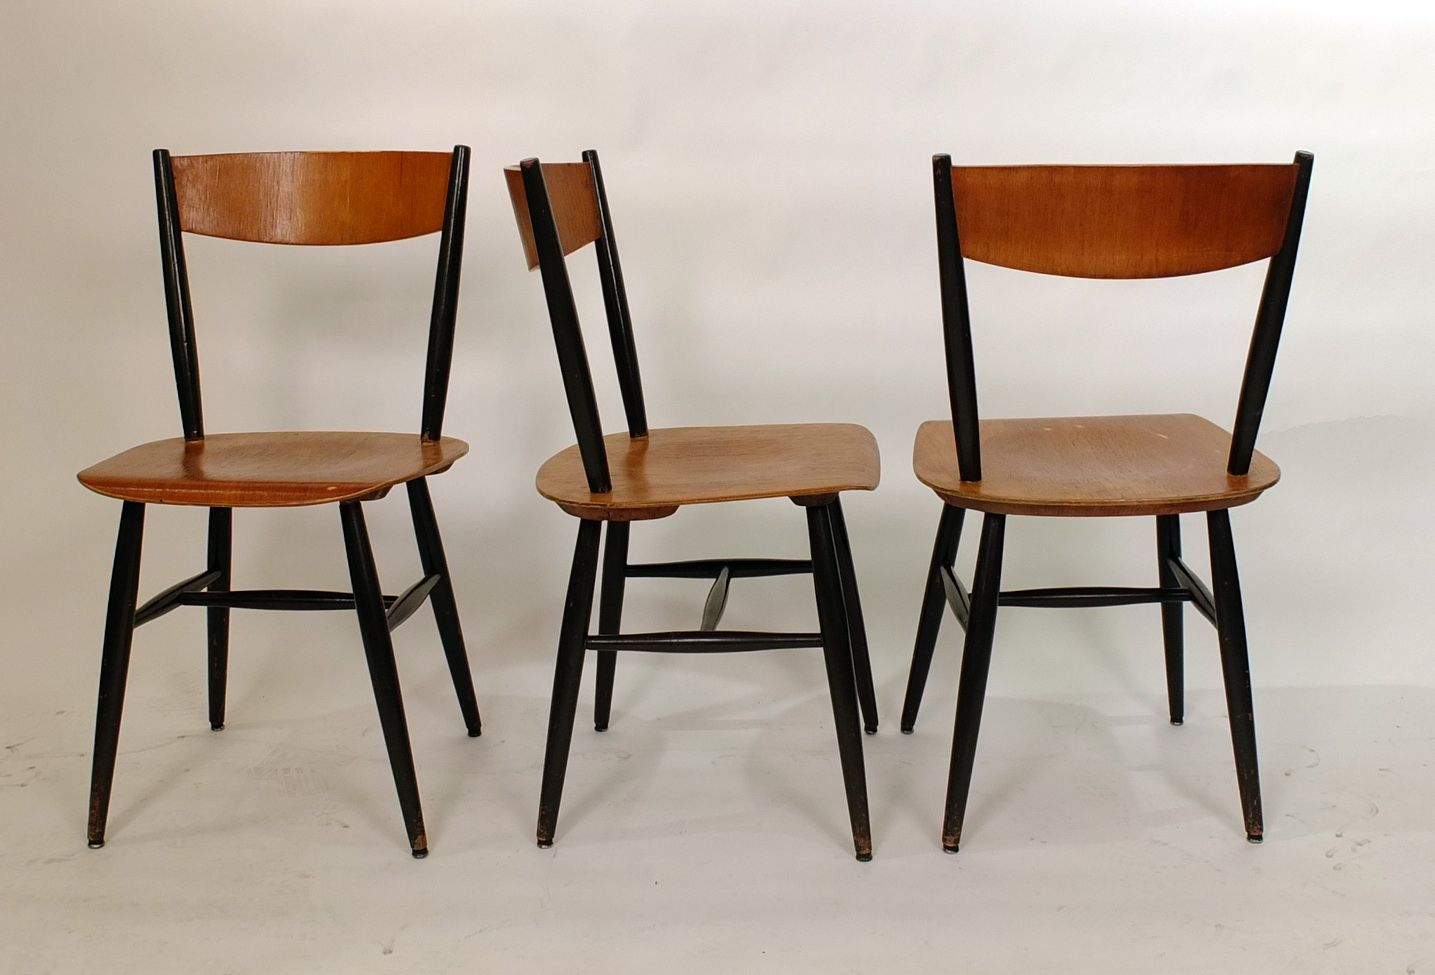 fanett chairs by ilmari tapiovaara for edsby 1958 set of 4 for sale at pamono. Black Bedroom Furniture Sets. Home Design Ideas